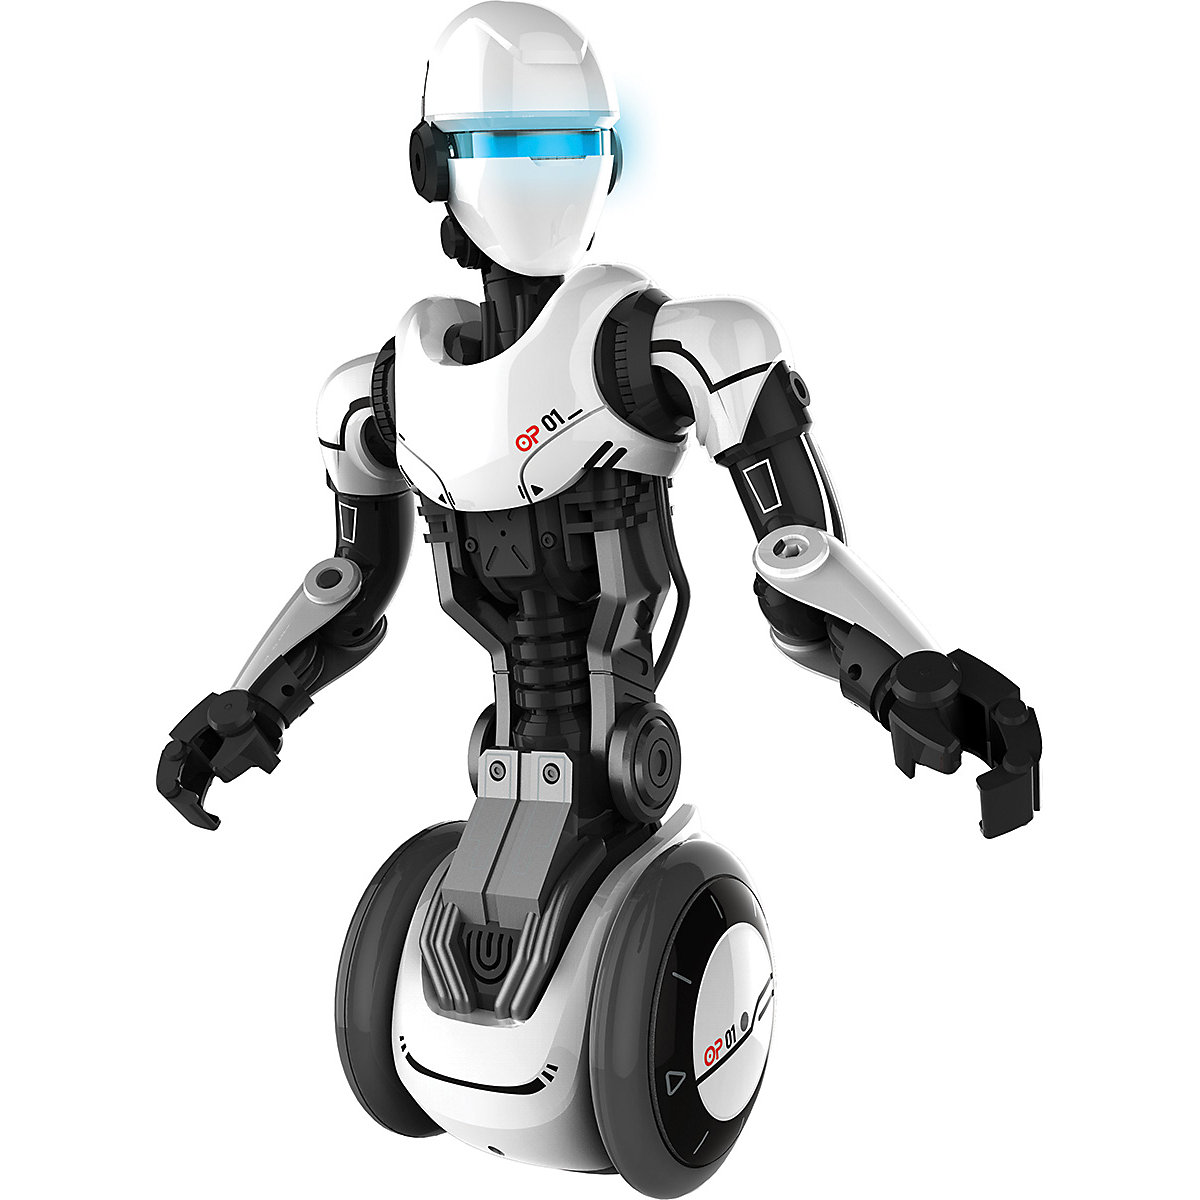 Silverlit Robots & Accessories1 200382145 Remote Control Toys robotics smart with intelligence games